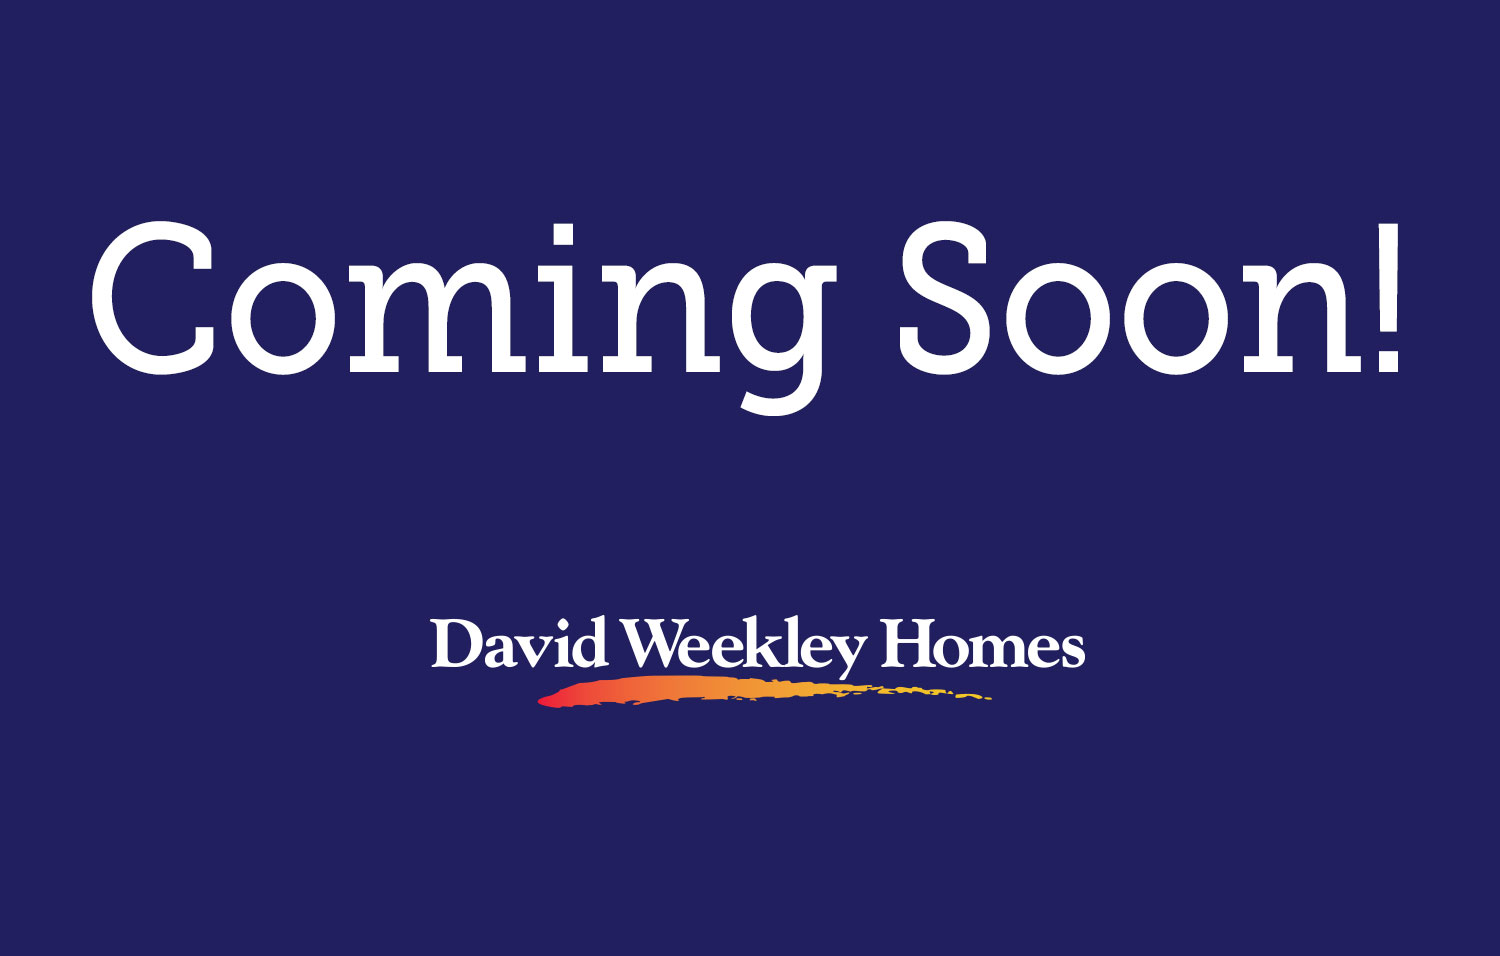 The Meadows at Imperial Oaks - Coming Soon